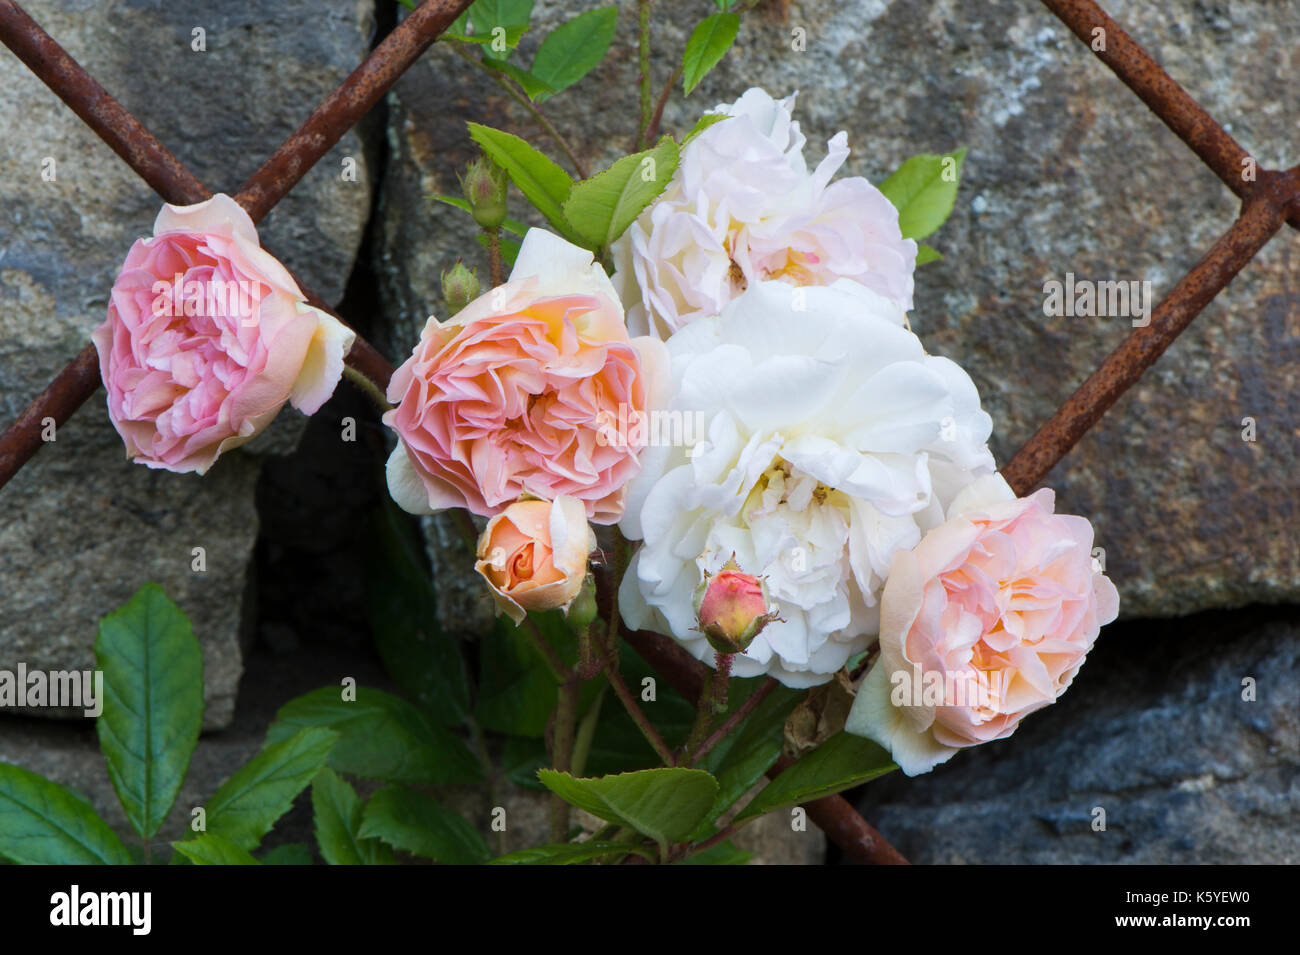 Beautiful, private, traditional, country garden, West Yorkshire, England, UK - summer flowering plants (pale pink roses) in close-up on metal trellis. - Stock Image